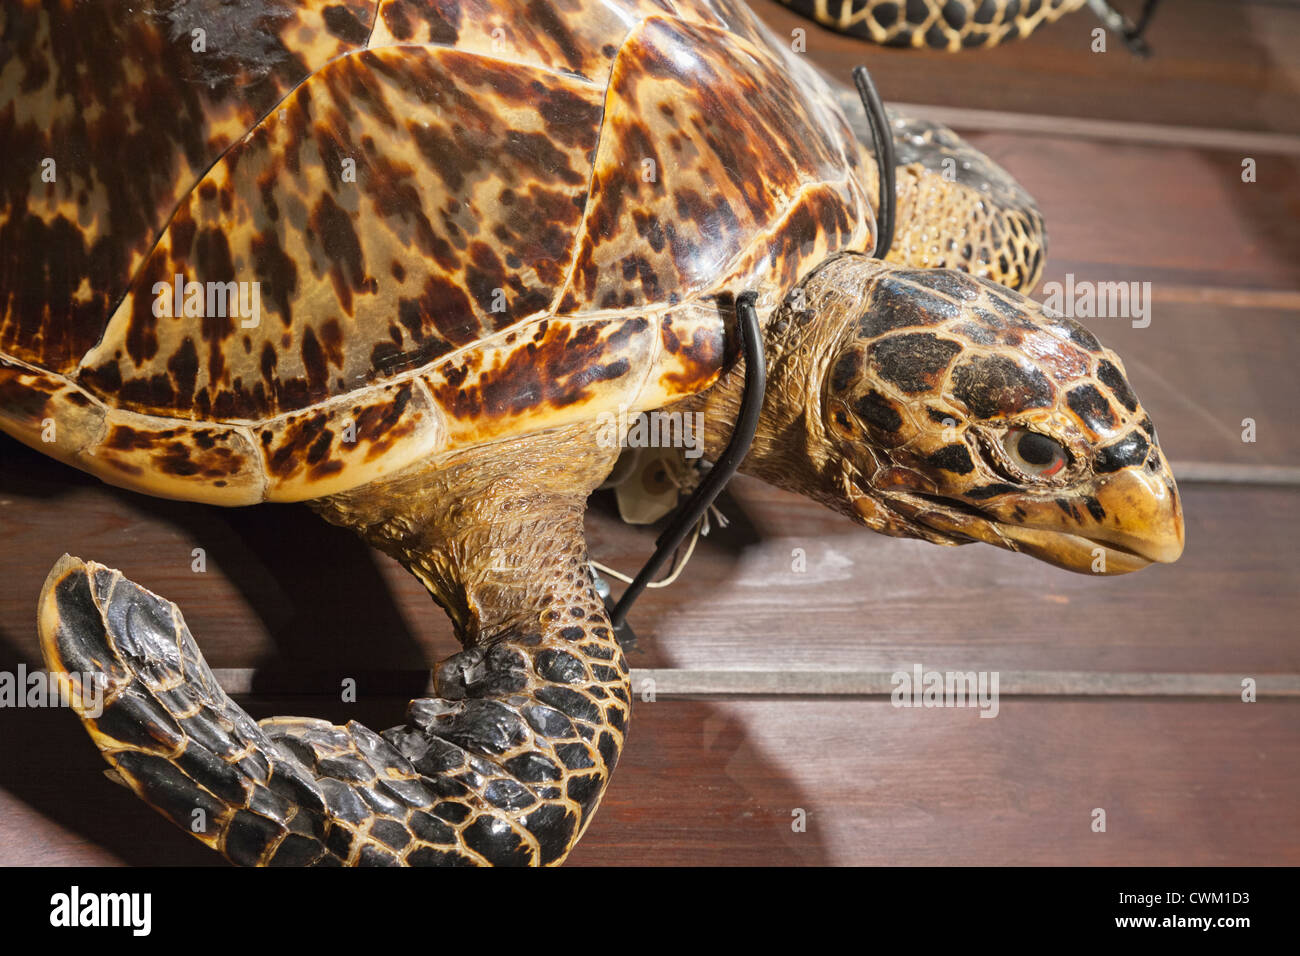 England, London, University College London, The Grant Museum of Zoology, Hawksbill Turtle - Stock Image